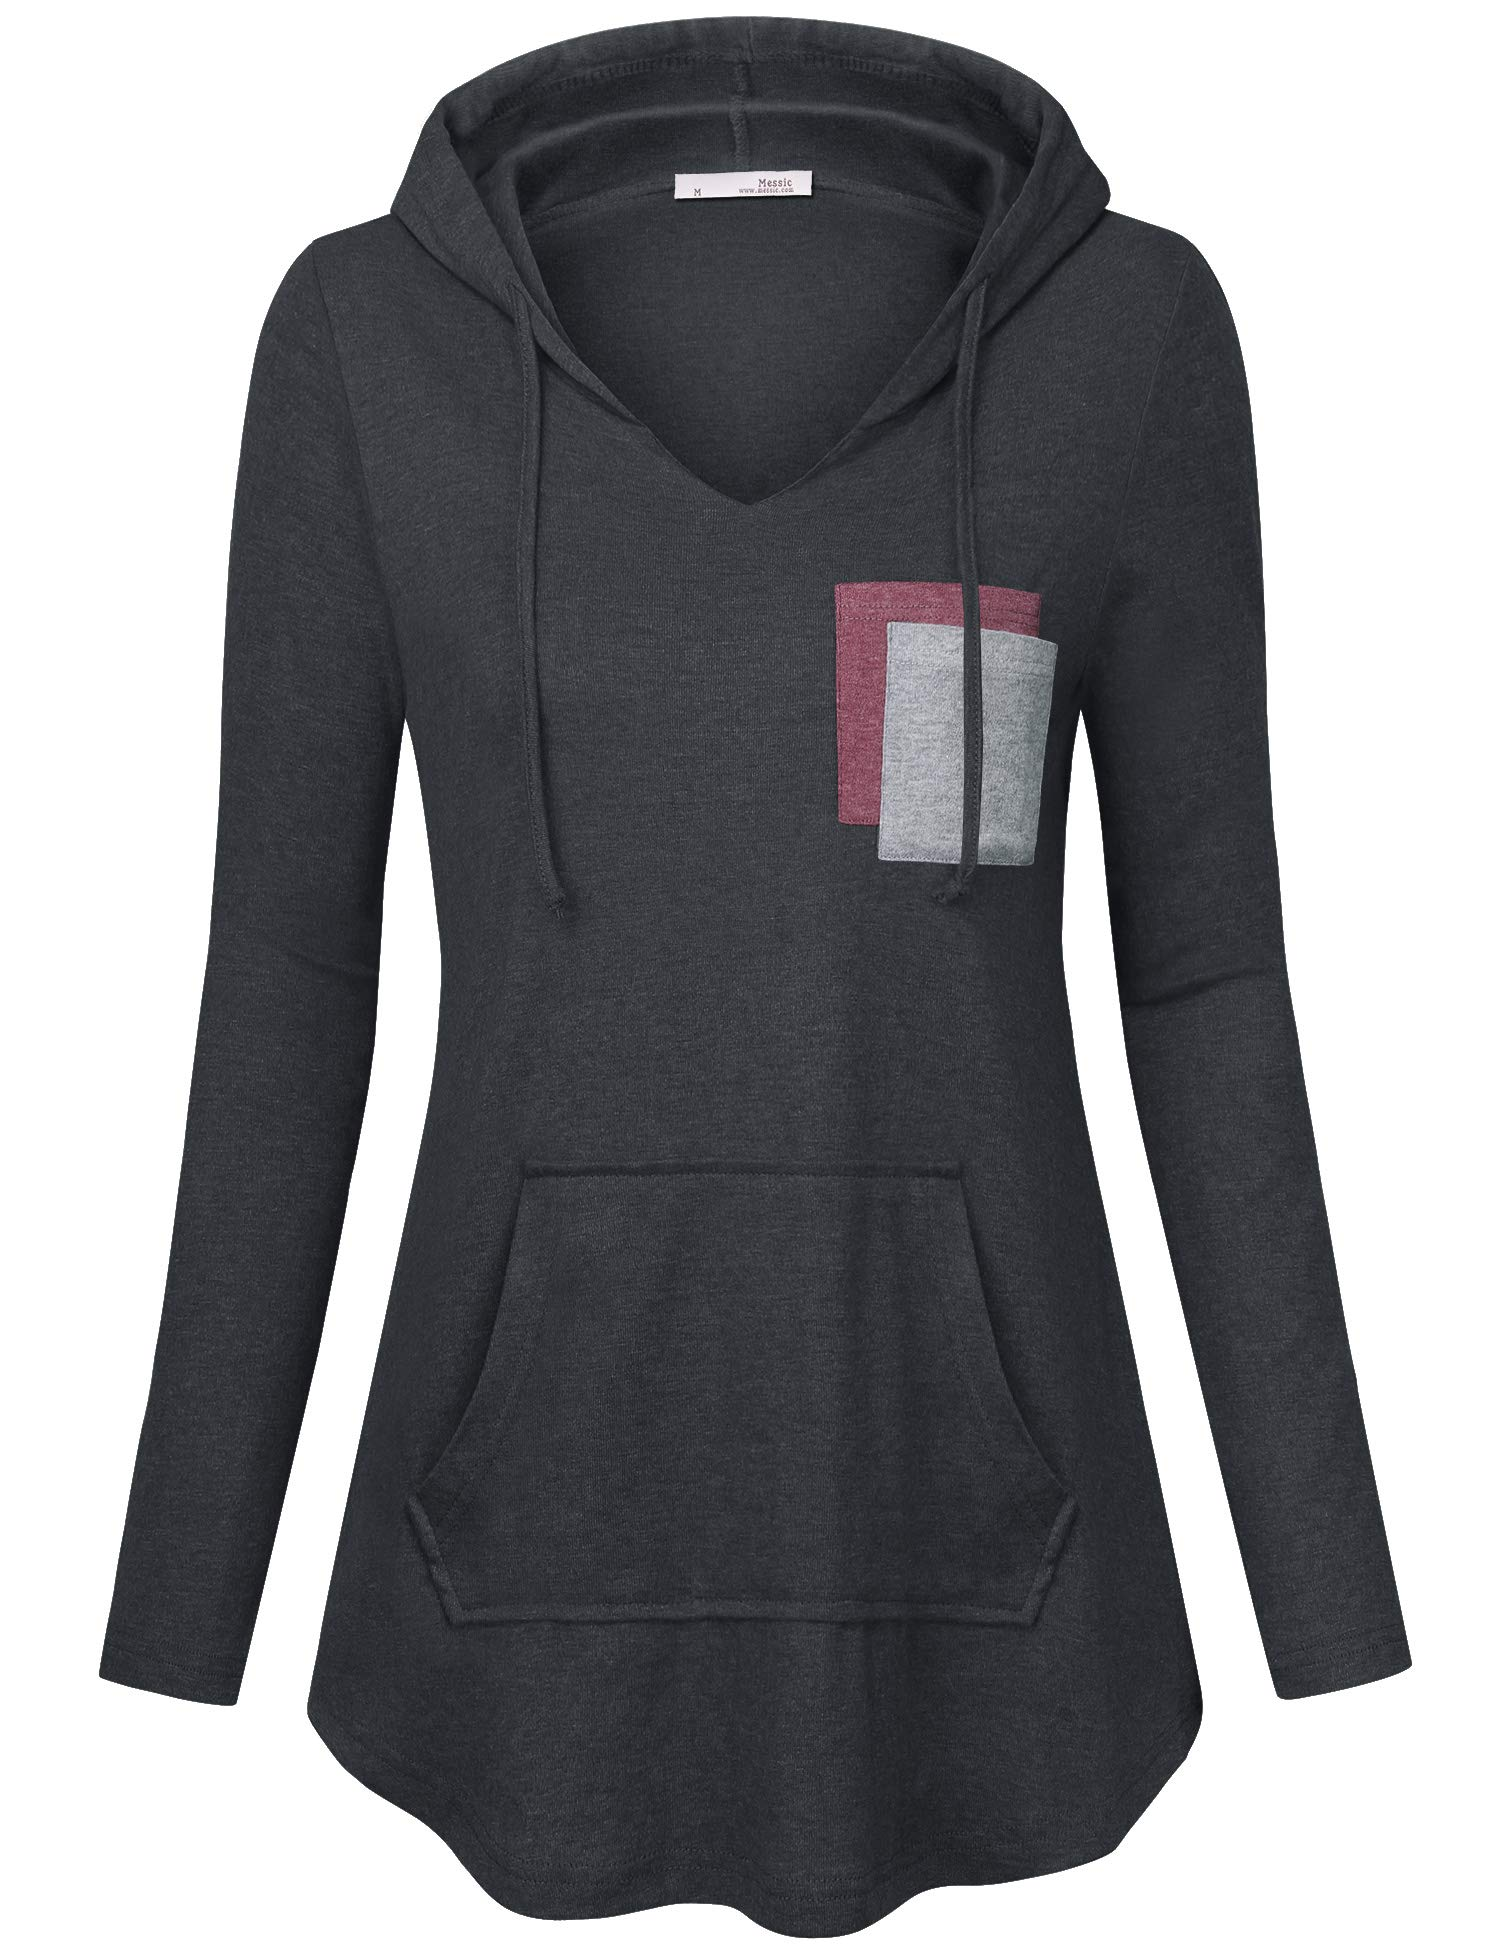 Messic Hoodies for Women Pullover, Casual A-Line Kangaroo Pockets Tunic Sweaters V Neck Long Sleeve Leisure Hooded Sweatshirt Carbon Black X-Large